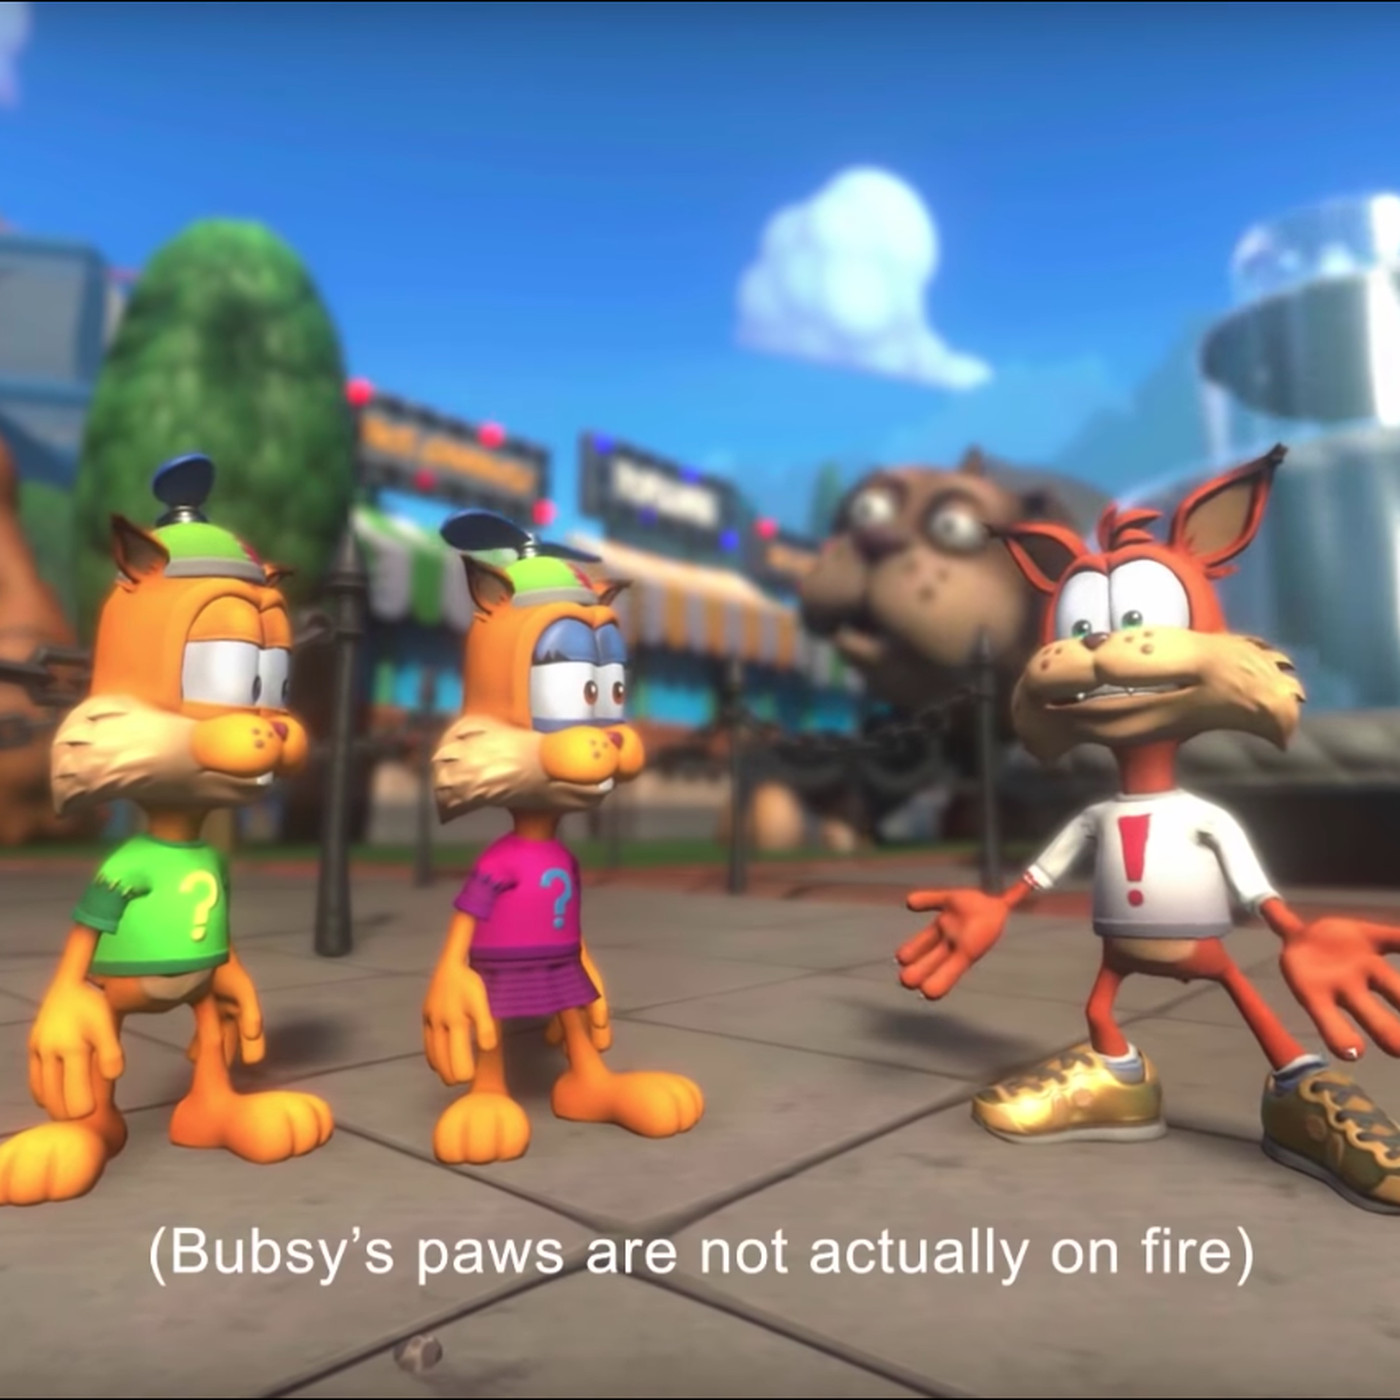 Image result for bubsy paws on fire""